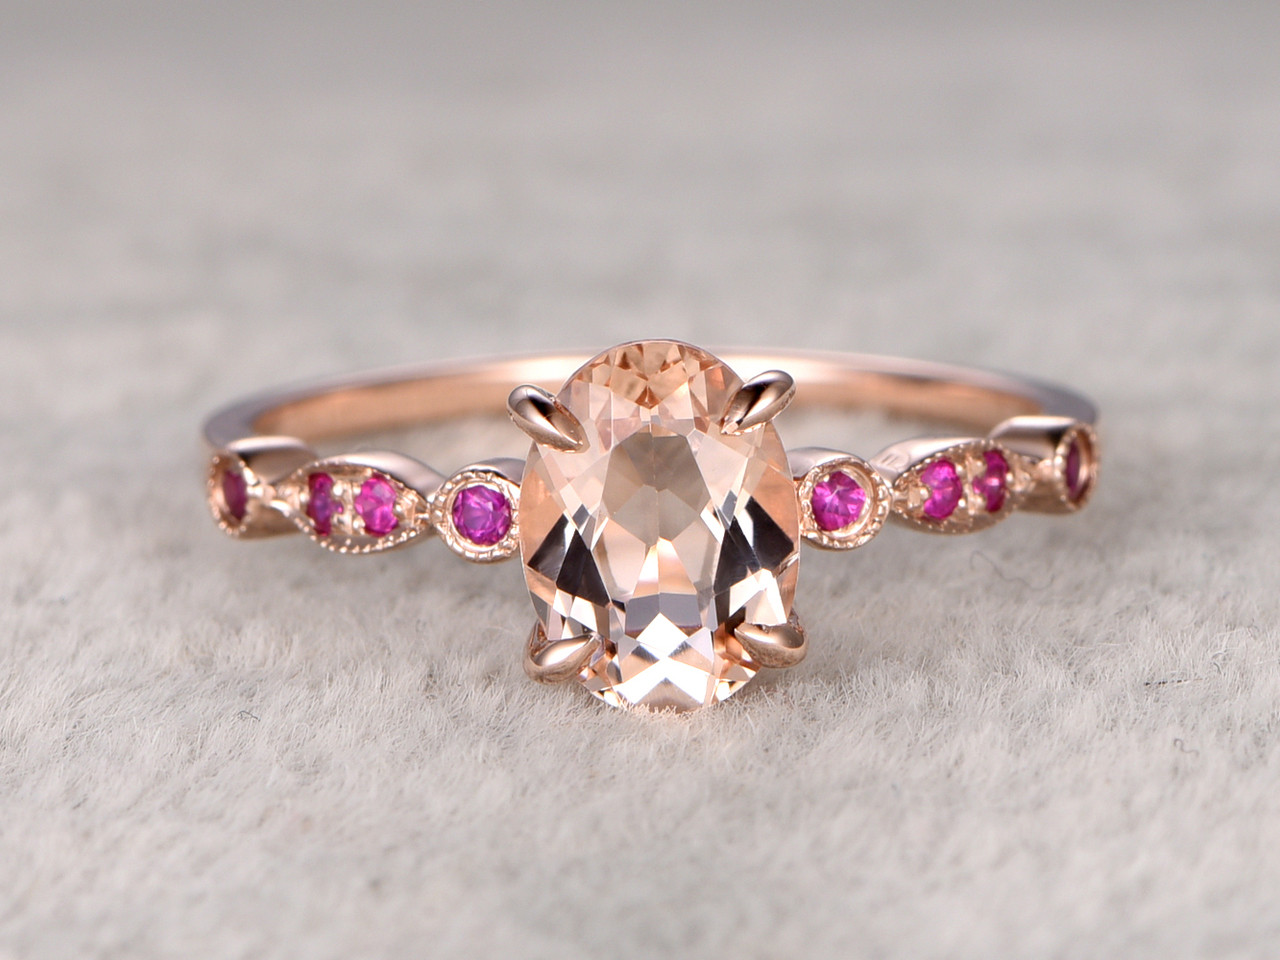 Oval morganite engagement ring ruby wedding ring bbbgem 8x6mm oval morganite engagement ring ruby wedding ring 14k rose gold pink milgrain art deco antique junglespirit Image collections